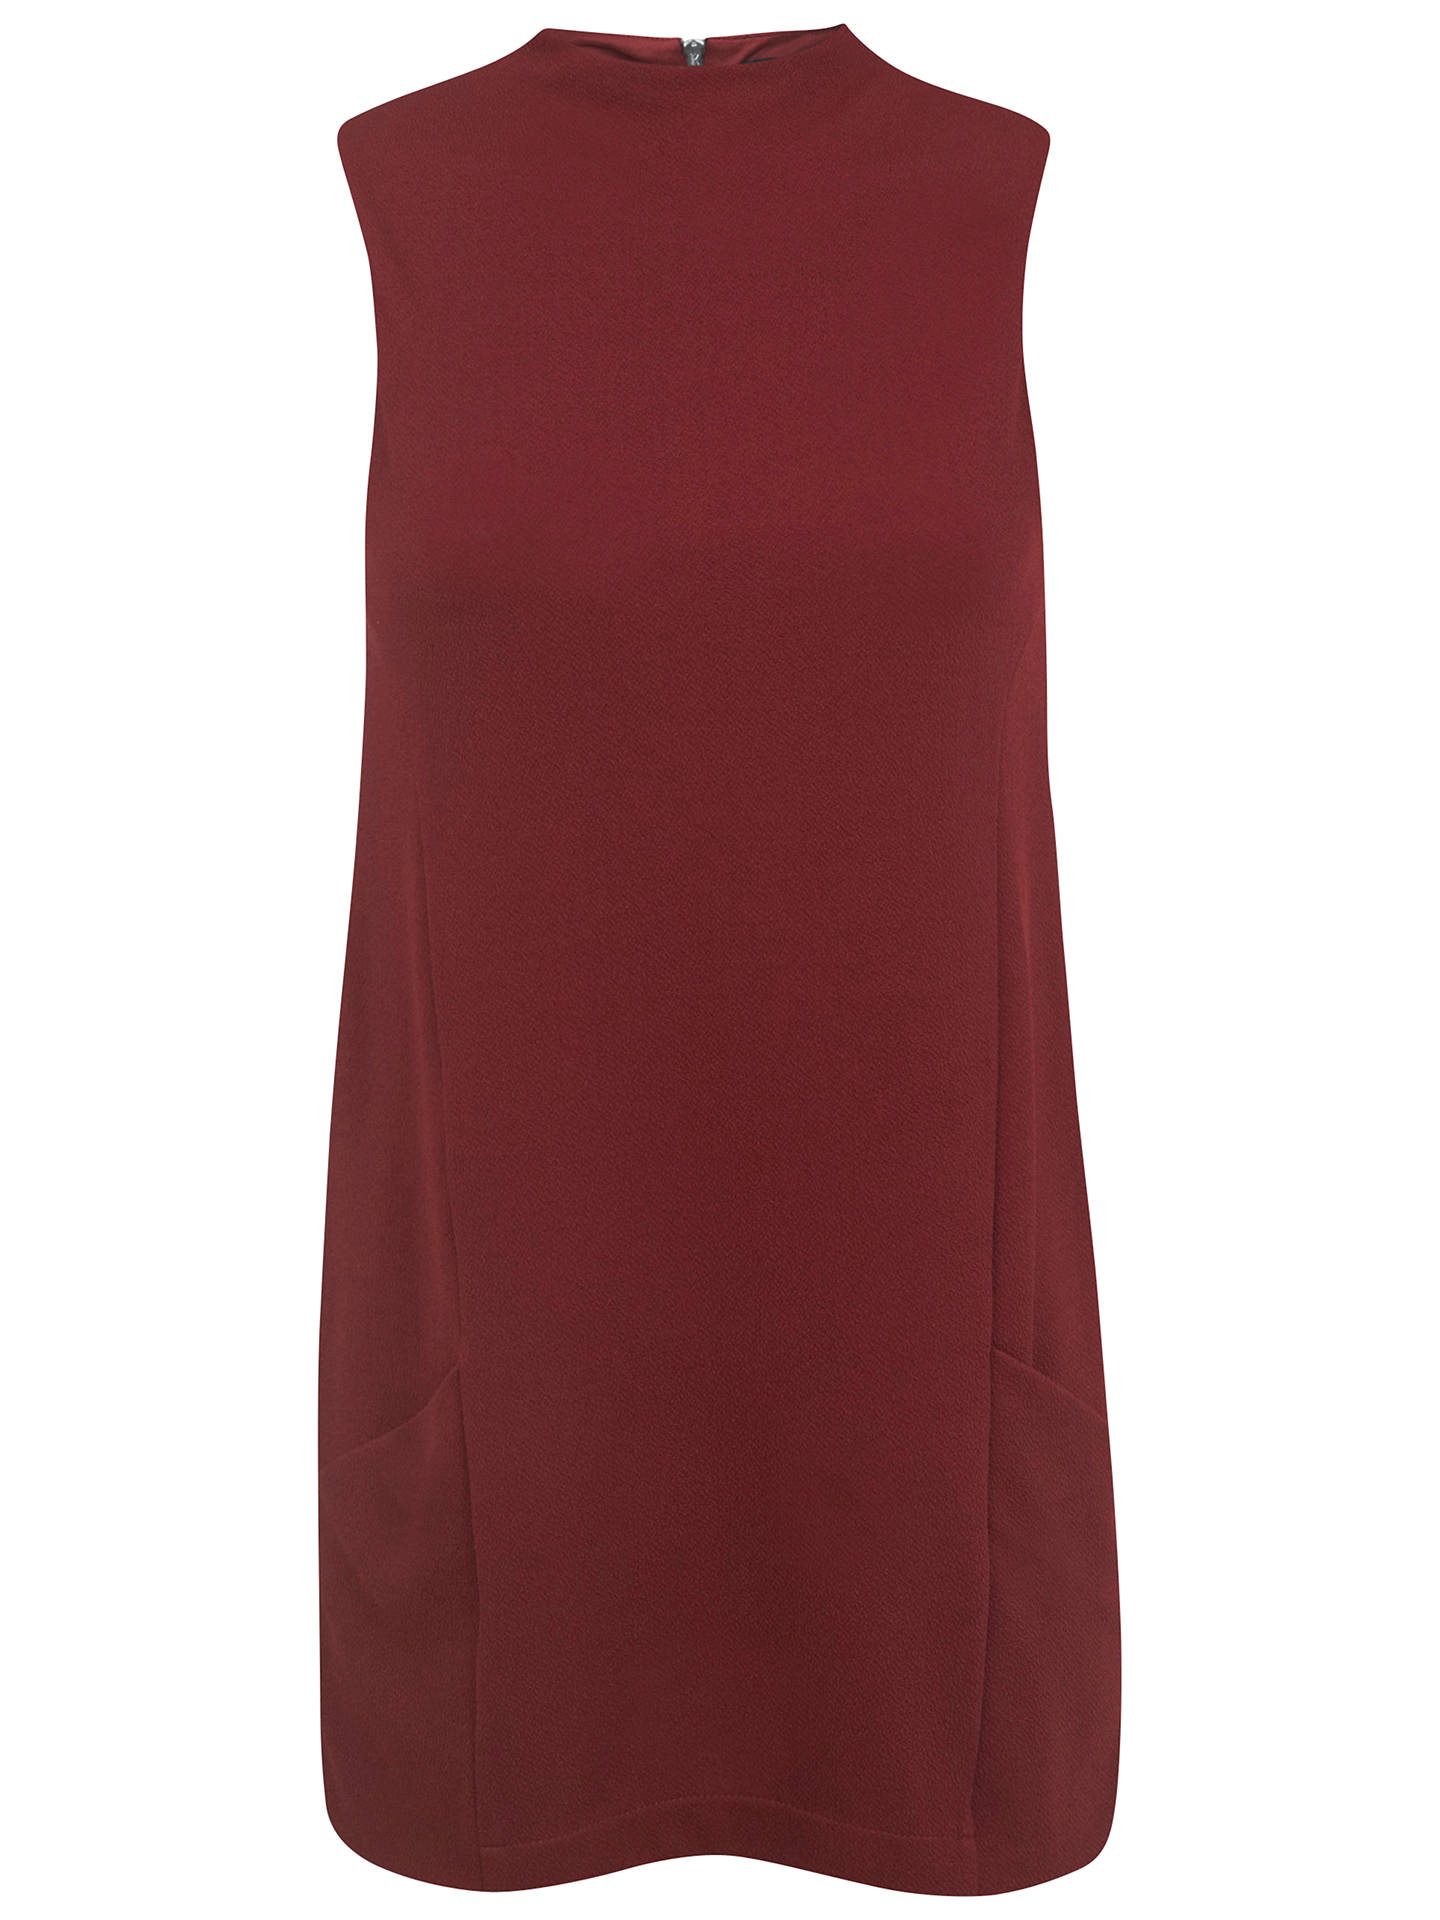 444968dbf2f Buy Oasis Double Pocket Tunic Dress, Burgundy, 6 Online at johnlewis.com ...